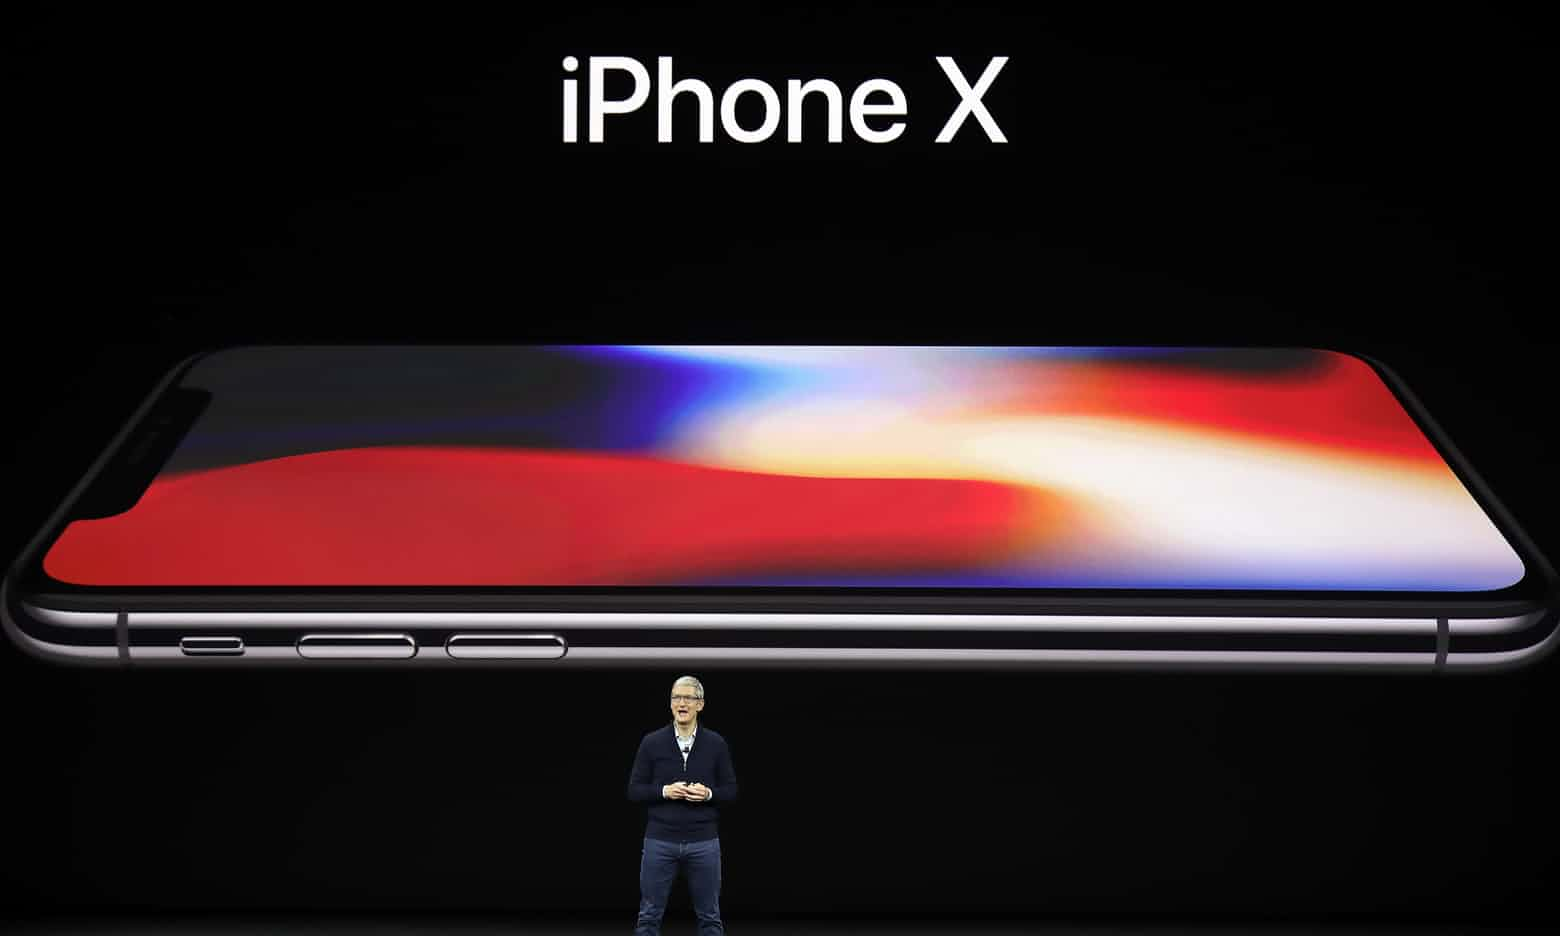 iPhone X 2 Serious Questions Raised About Face ID On New Apple iPhone X